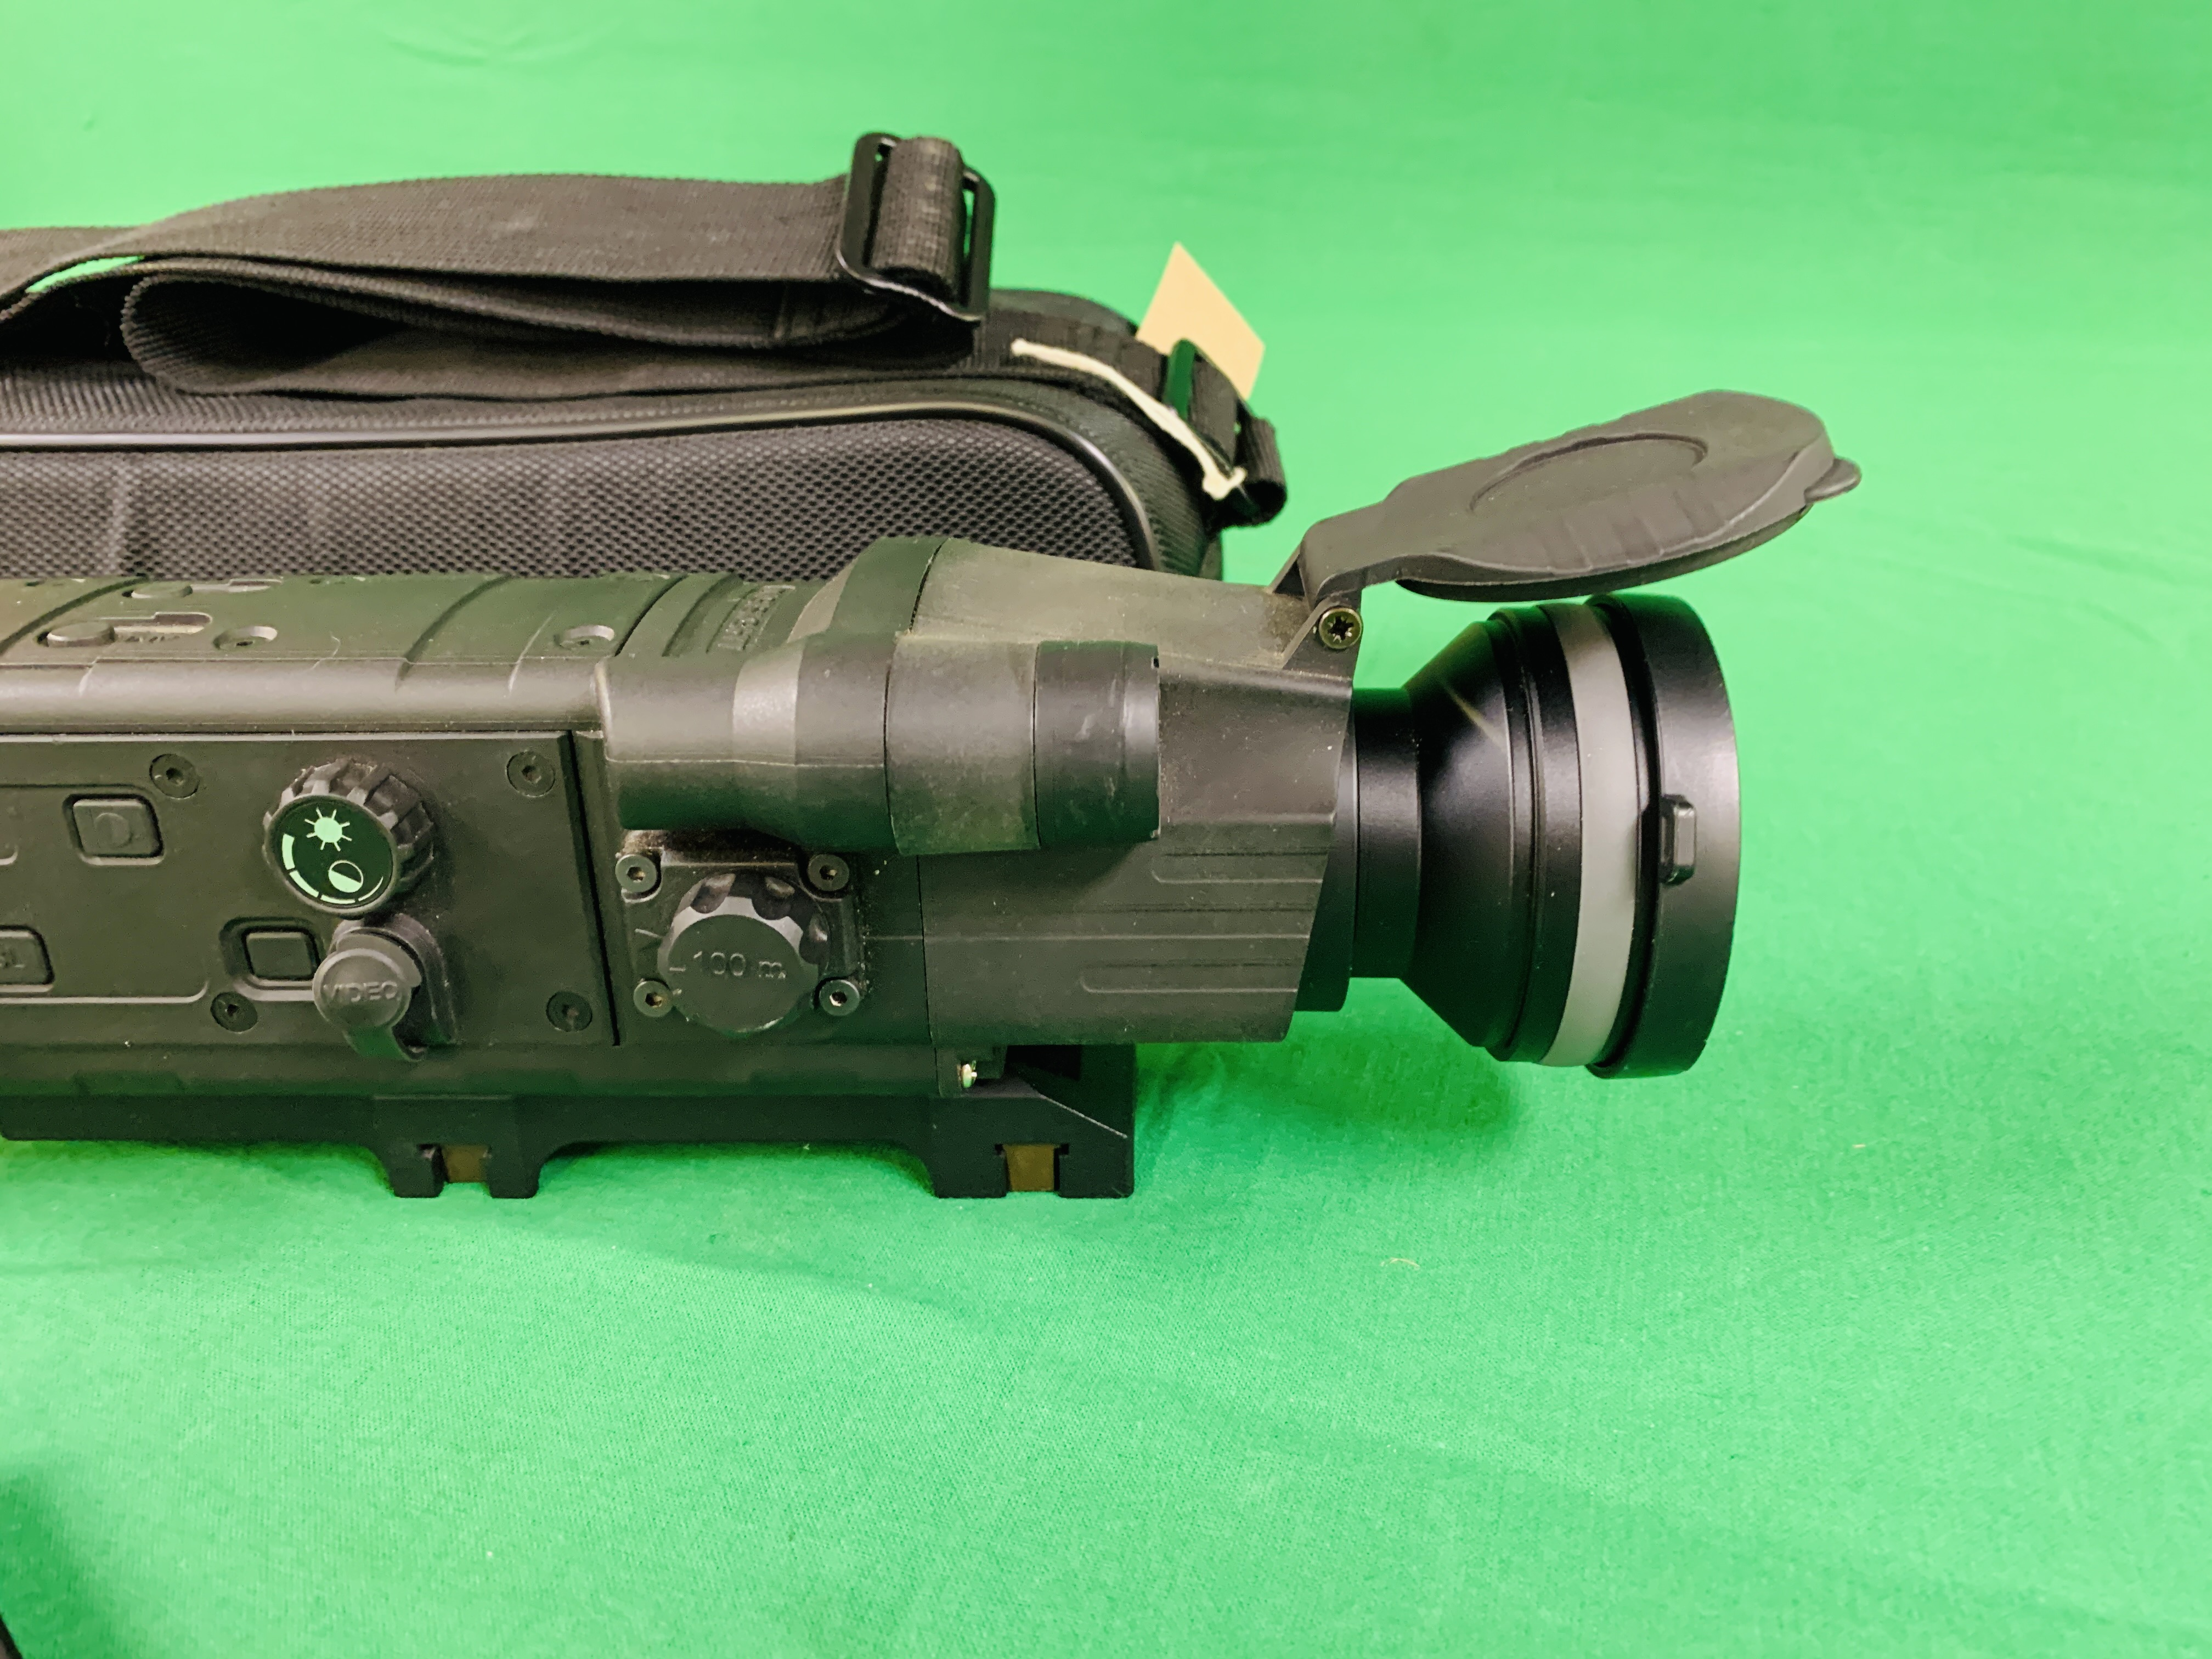 PULSAR N750 DIGI SIGHT RIFLE SCOPE COMPLETE WITH SONY TELE CONVERSION LENS ALONG WITH INSTRUCTION - Image 3 of 8